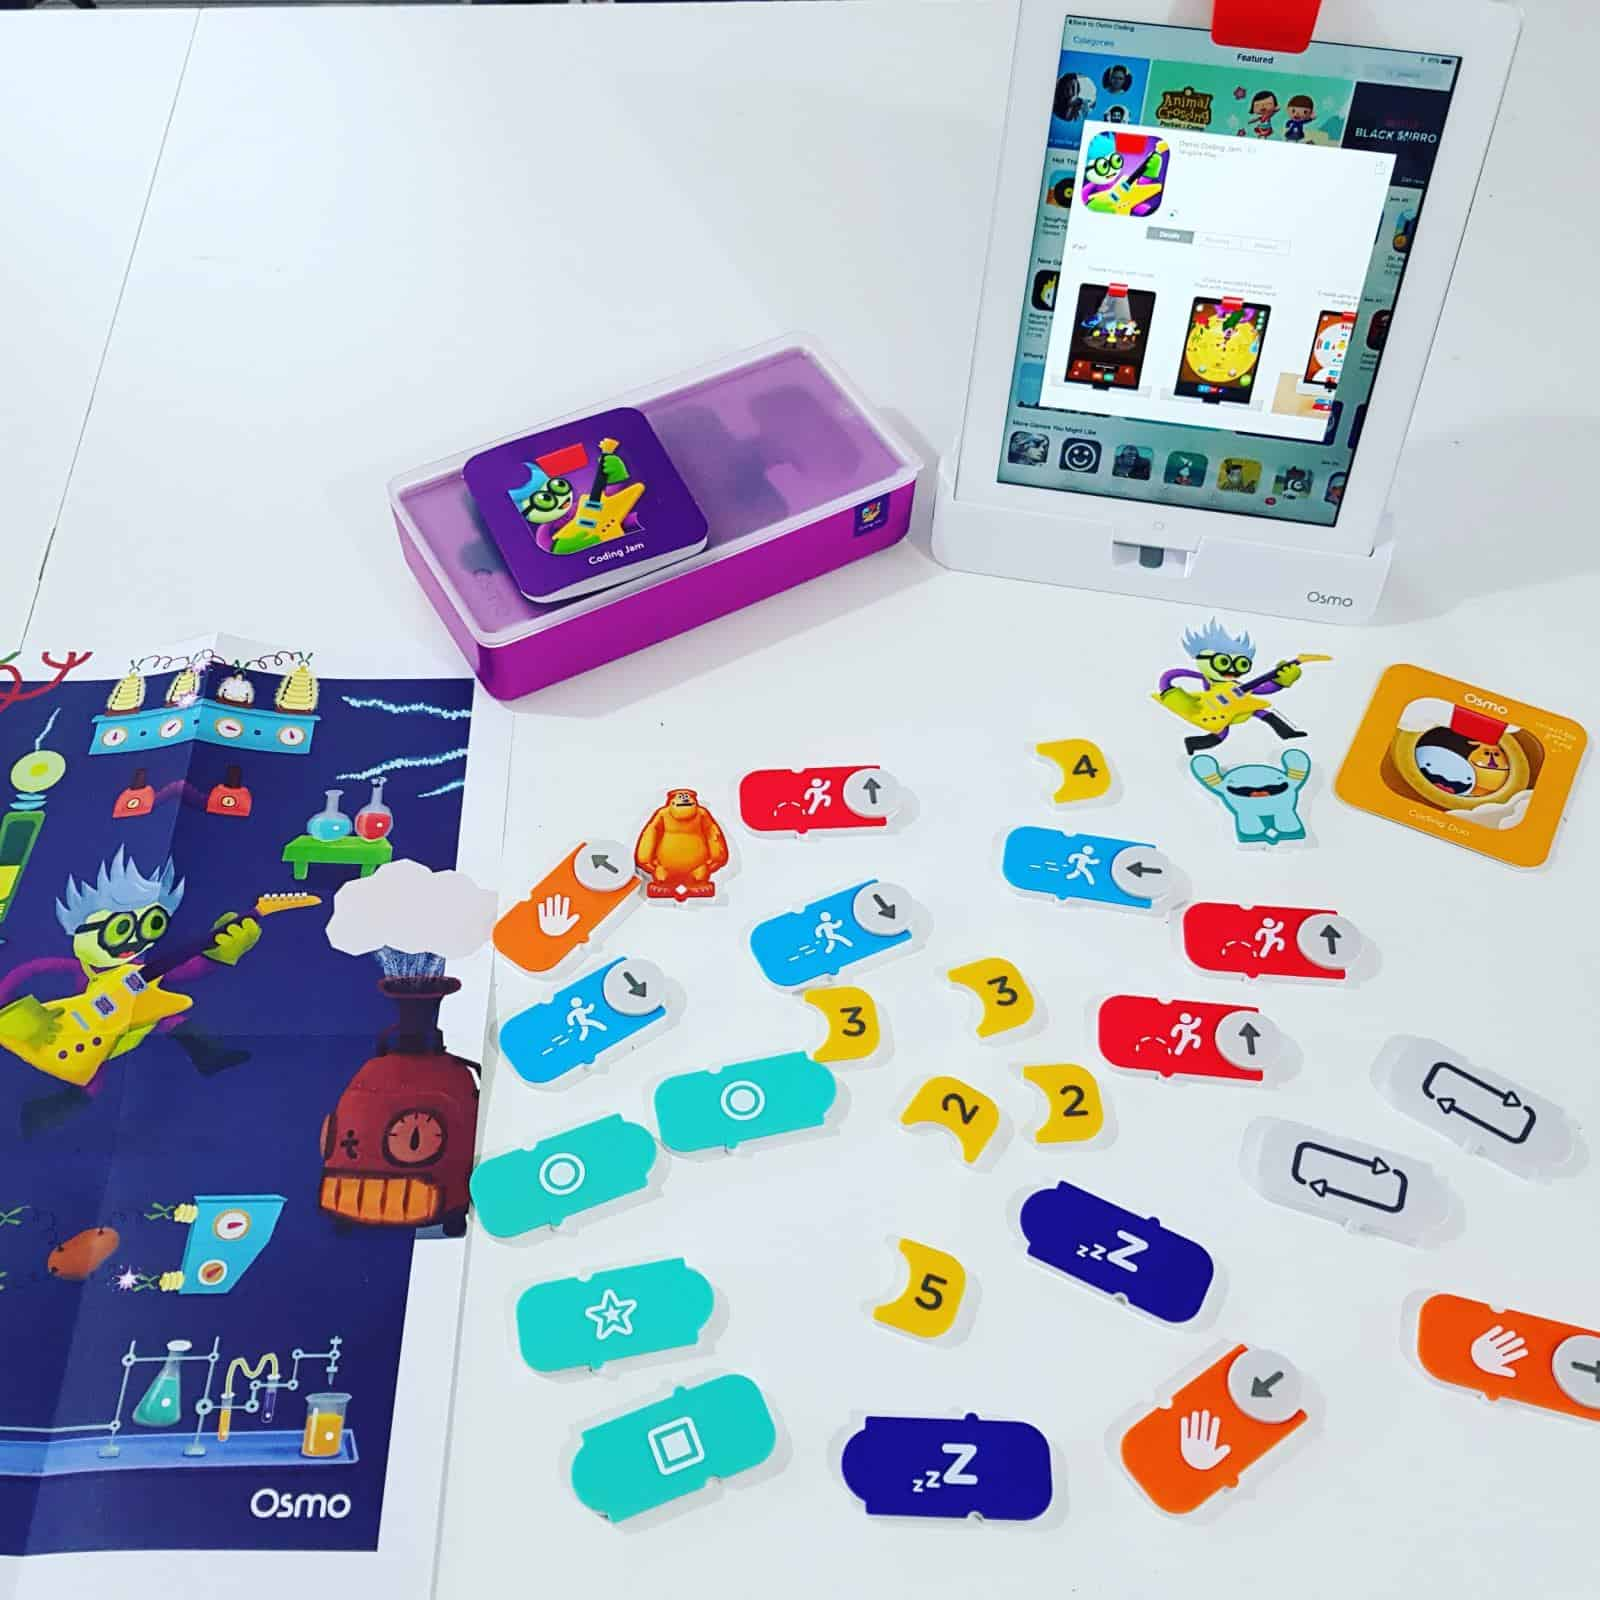 Osmo Coding Jam Review - Osmo coding review